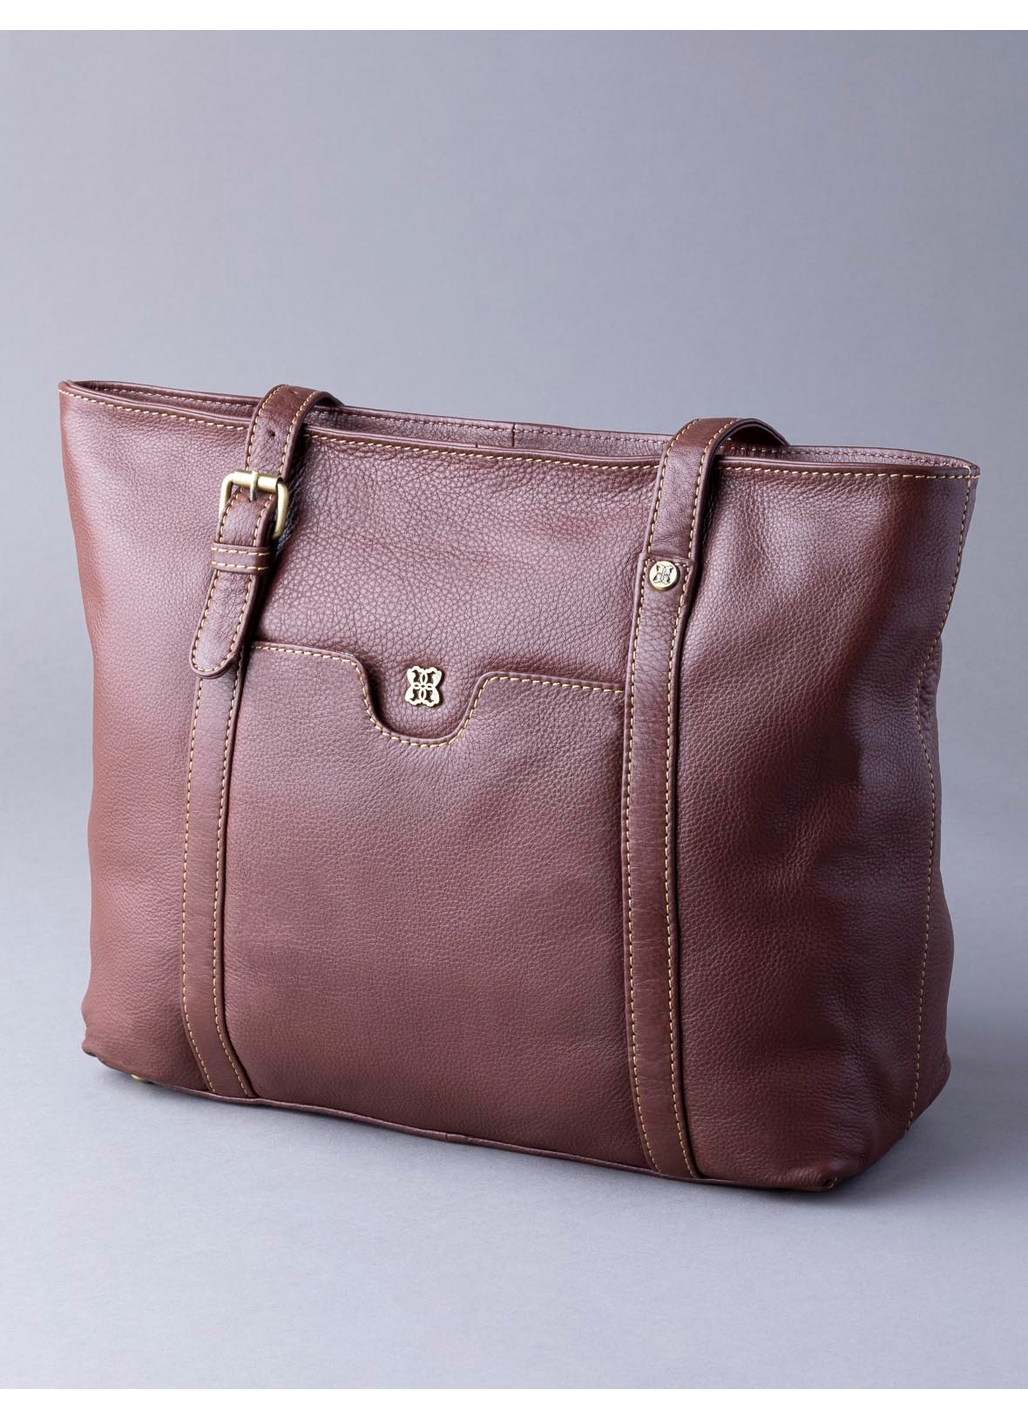 Rickerby Leather Tote Bag in Chestnut Brown